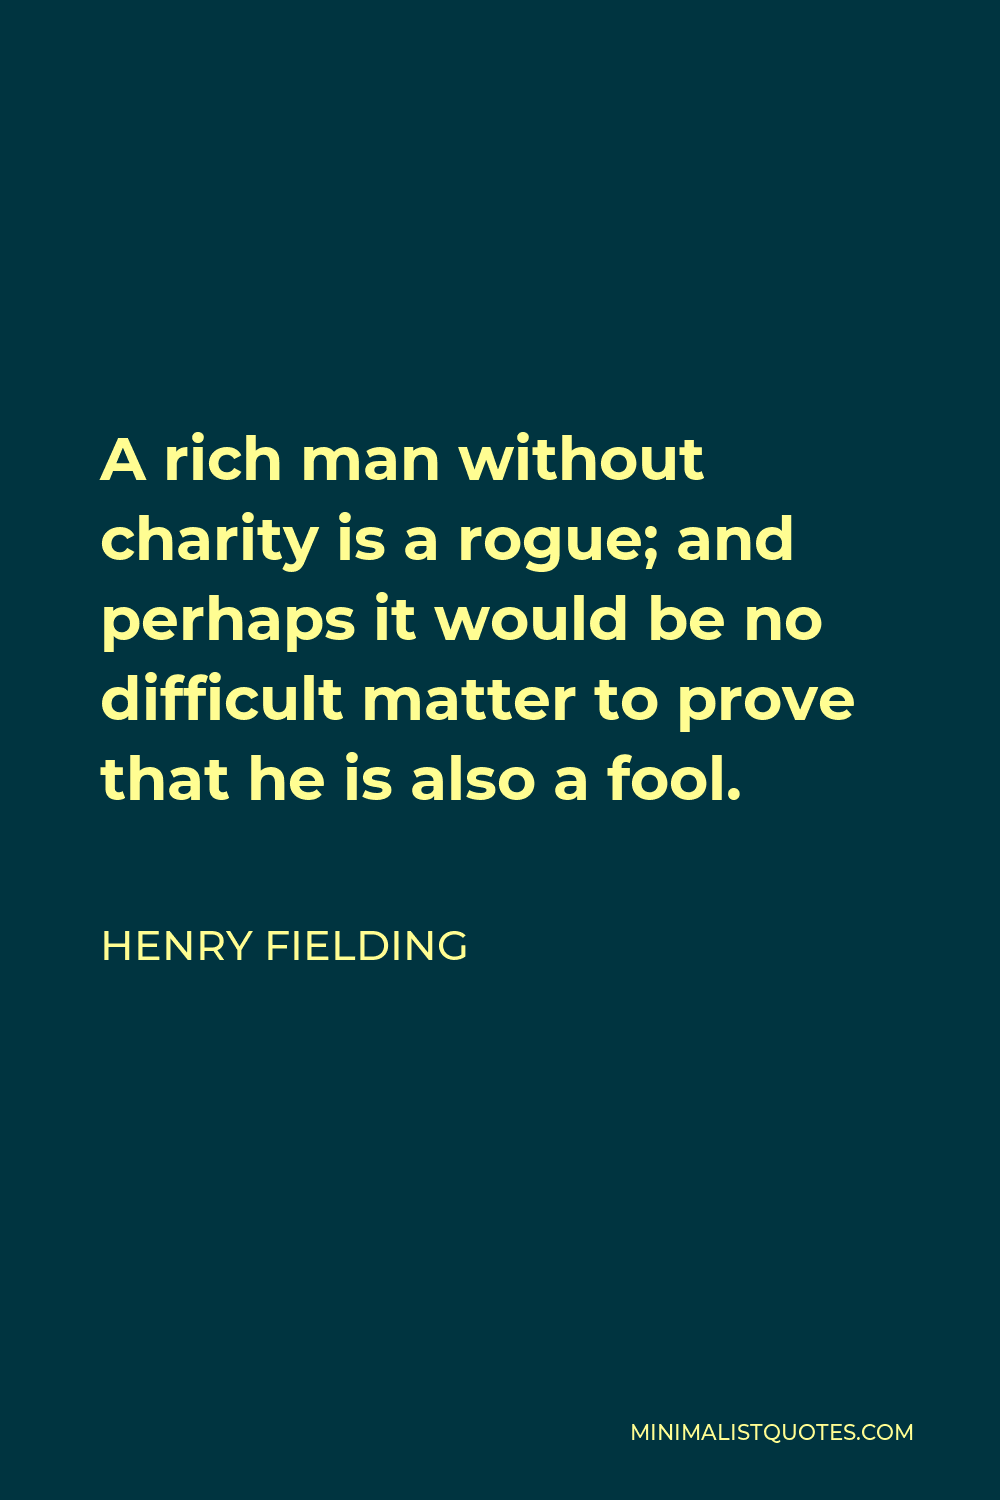 Henry Fielding Quote - A rich man without charity is a rogue; and perhaps it would be no difficult matter to prove that he is also a fool.